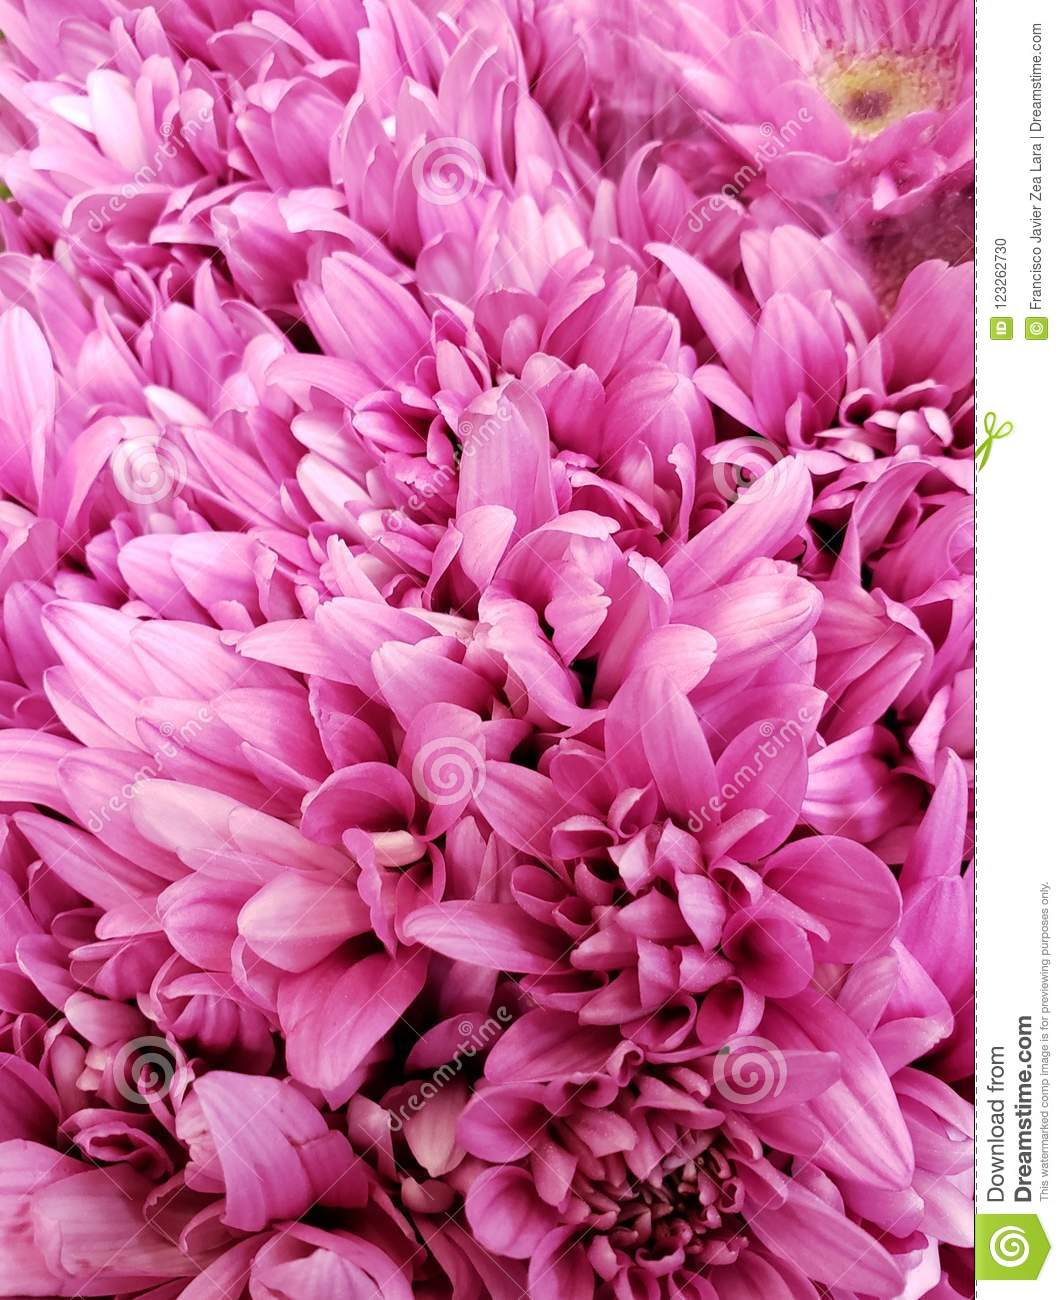 Pink daisy flowers in a floral bouquet background and texture stock download pink daisy flowers in a floral bouquet background and texture stock photo image izmirmasajfo